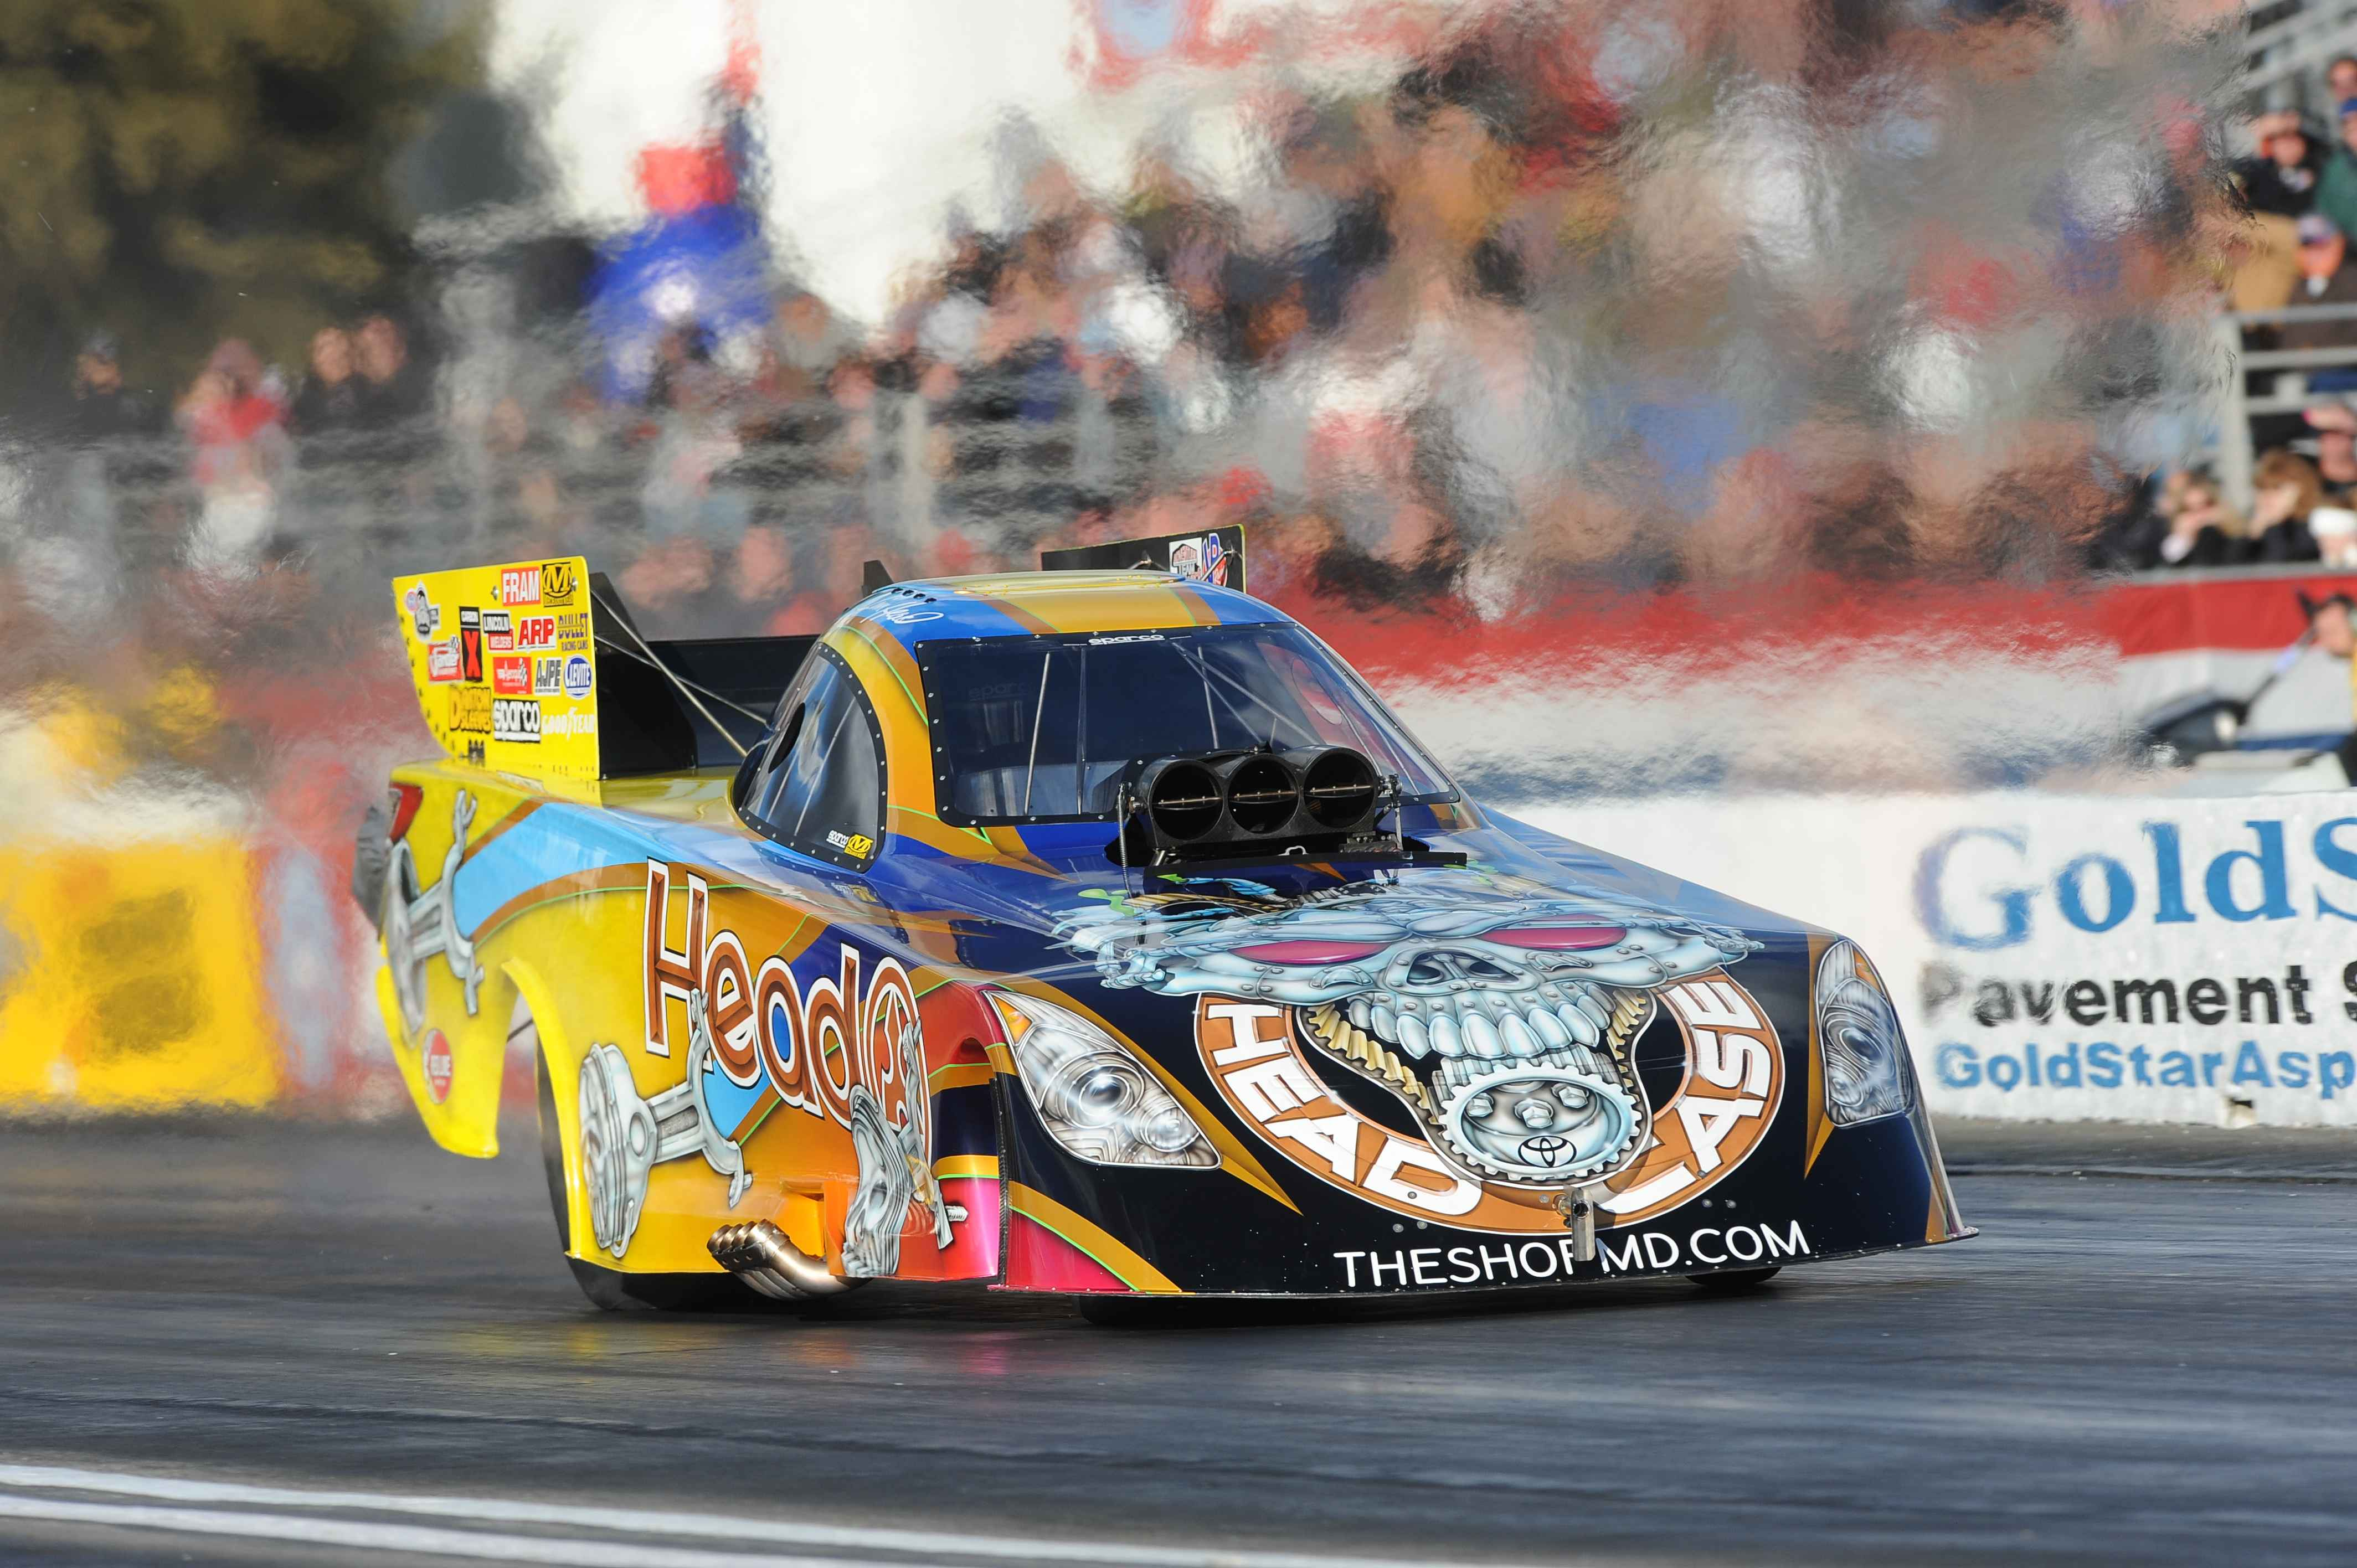 NHRA funny cars race racing drag z wallpaper background 4256x2832